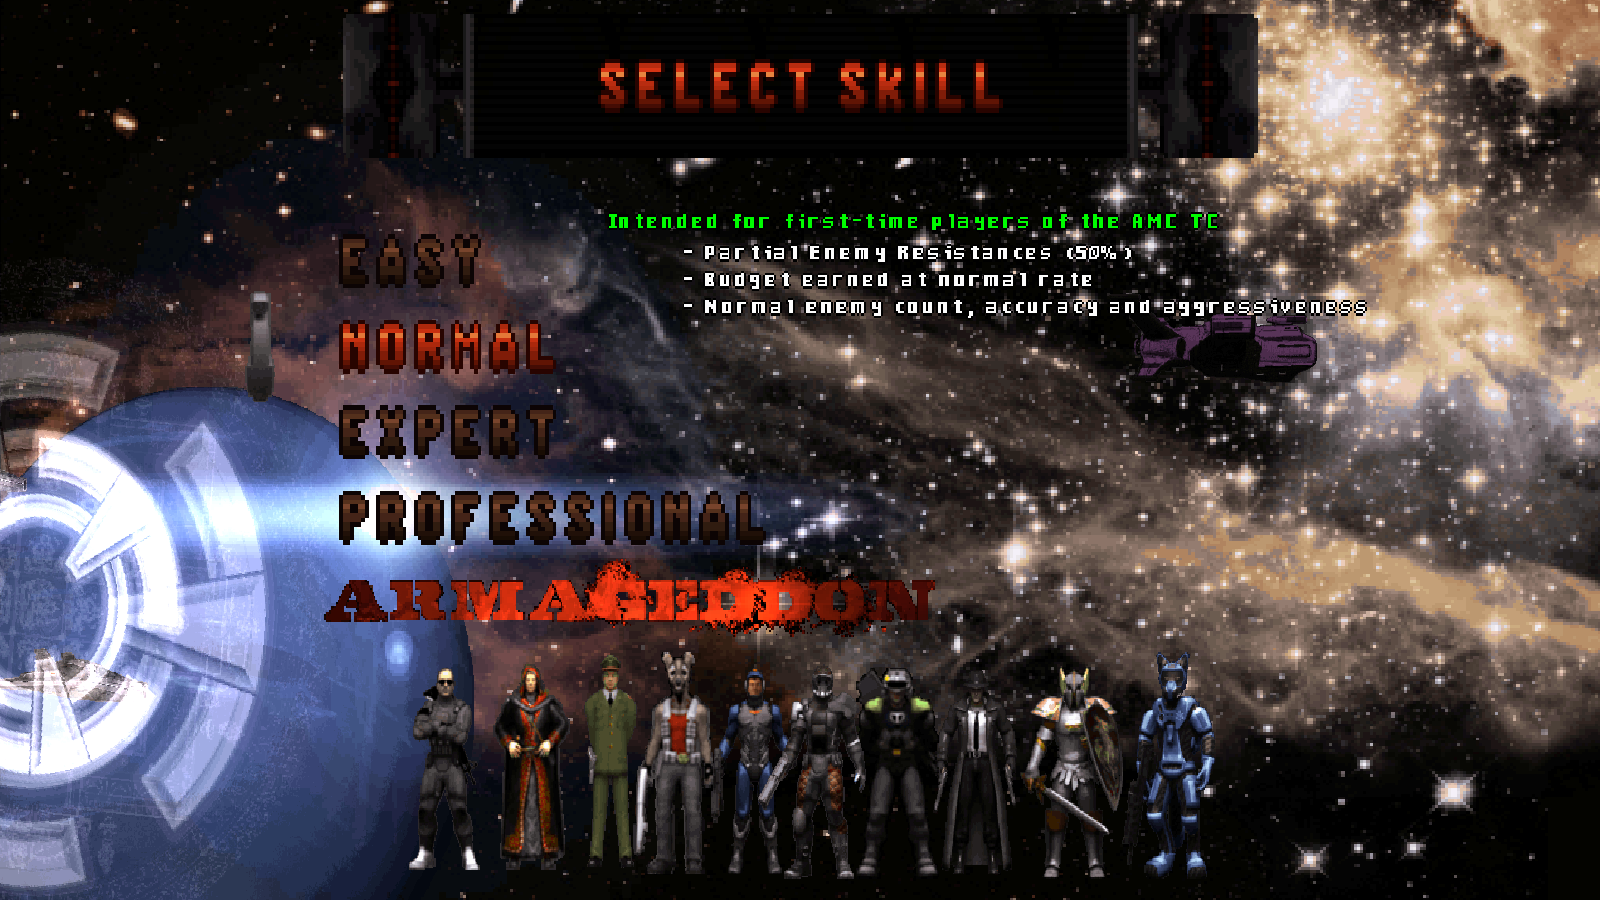 AMC difficulty selection